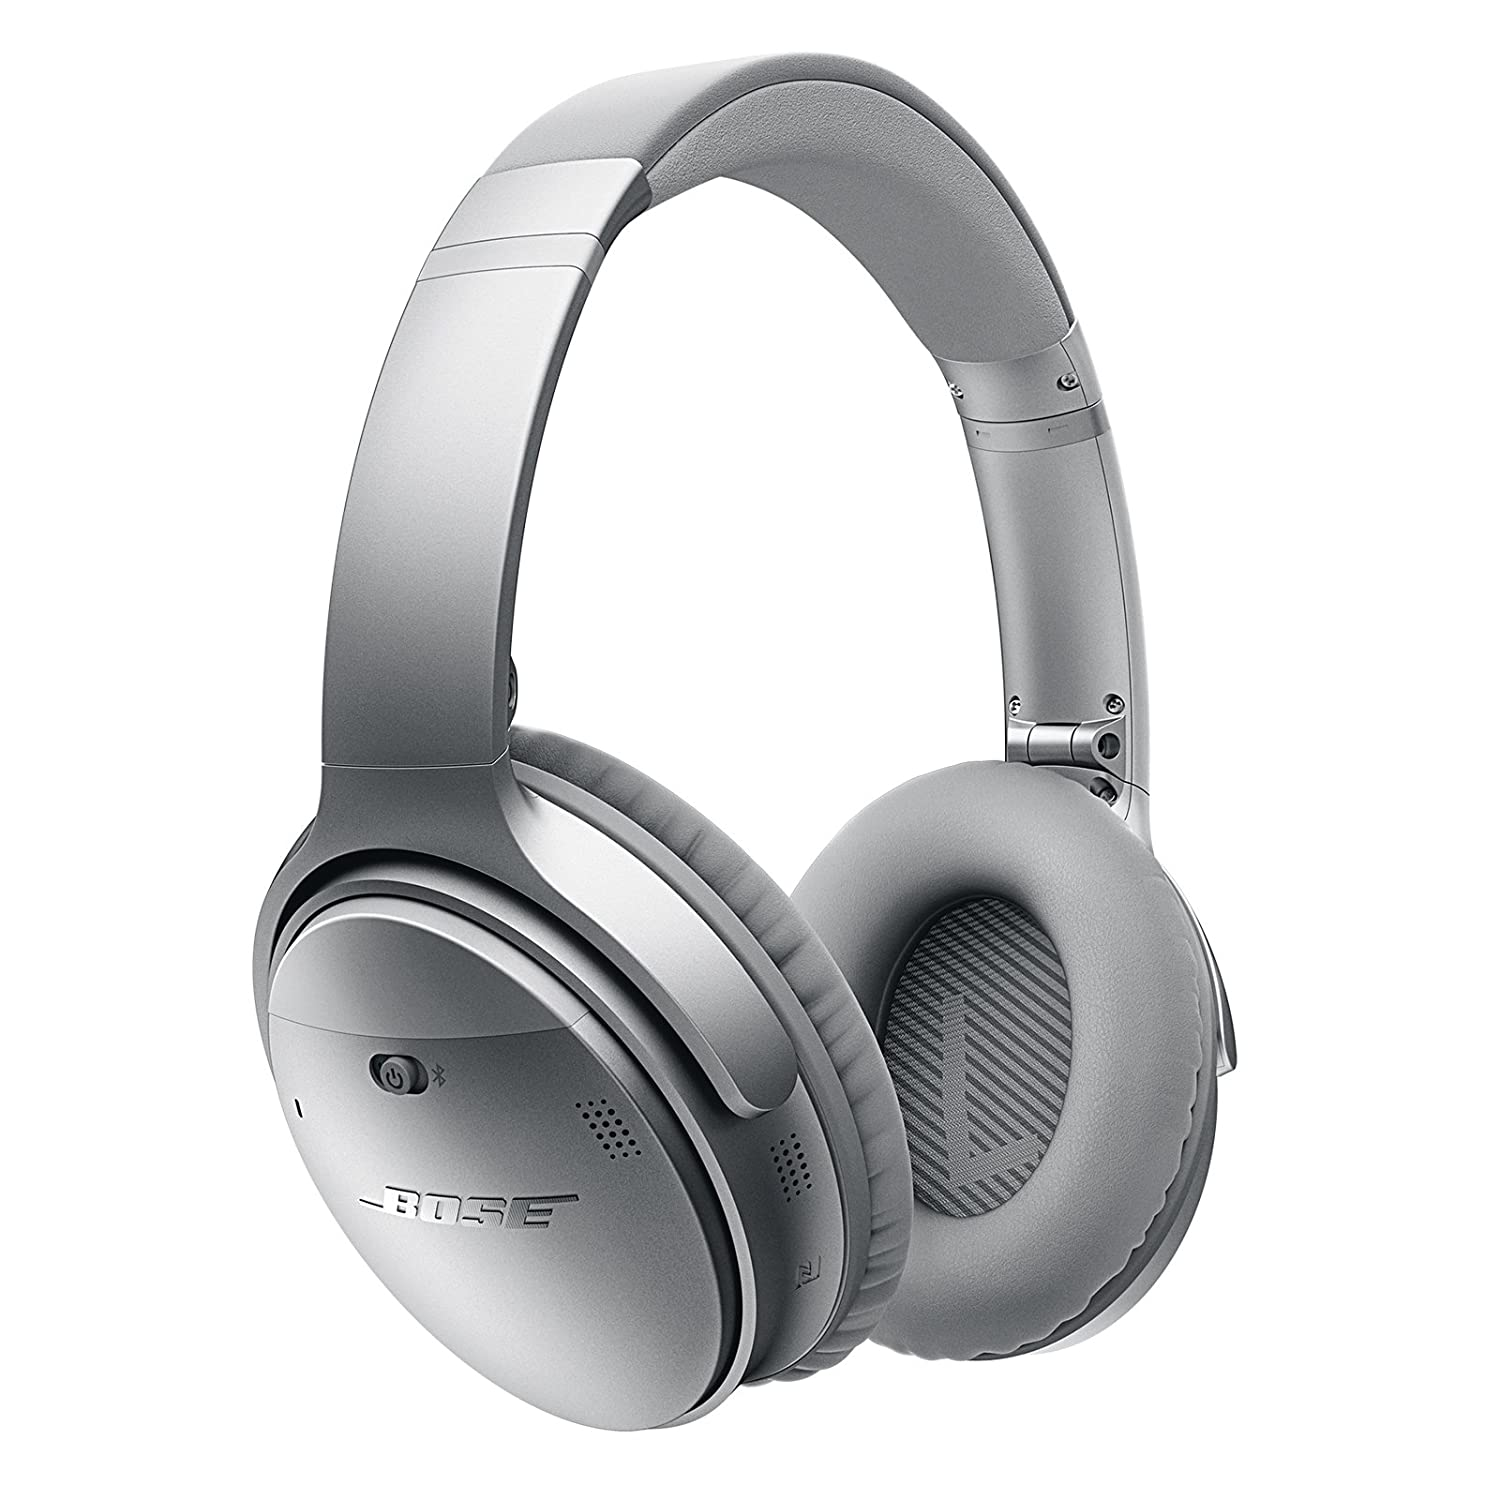 Bose QuietComfort 35 (Series I) Wireless Headphones, Noise Cancelling - Silver